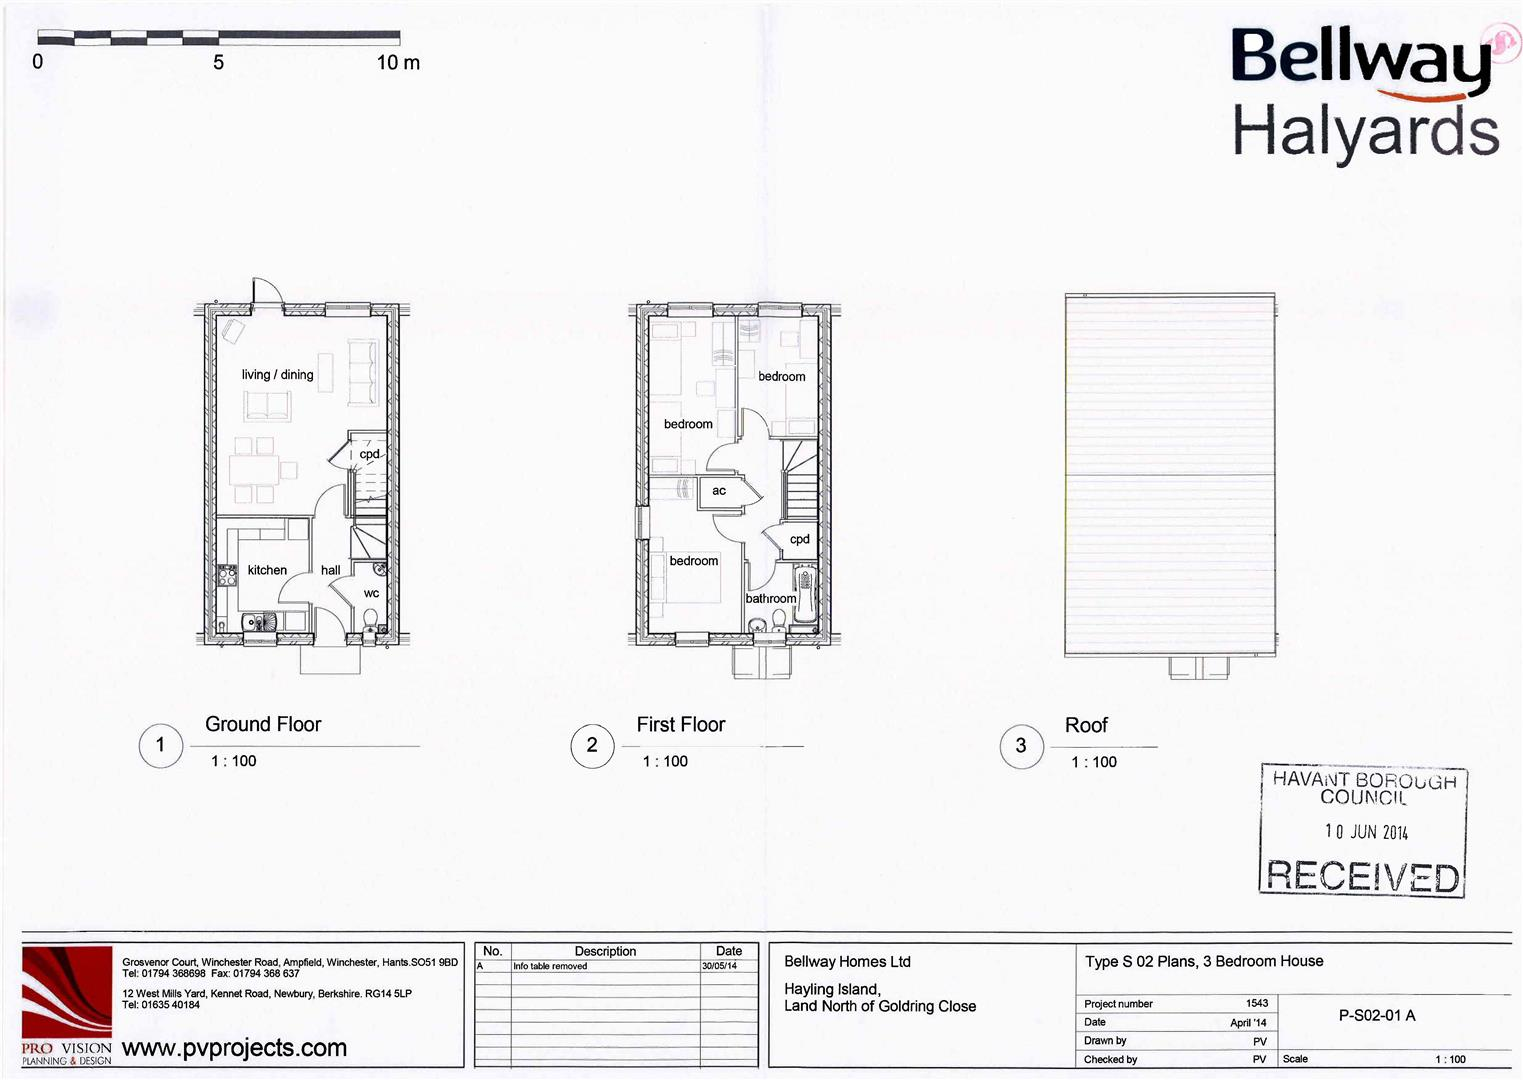 3 Bed Houses Floor Plans.jpg